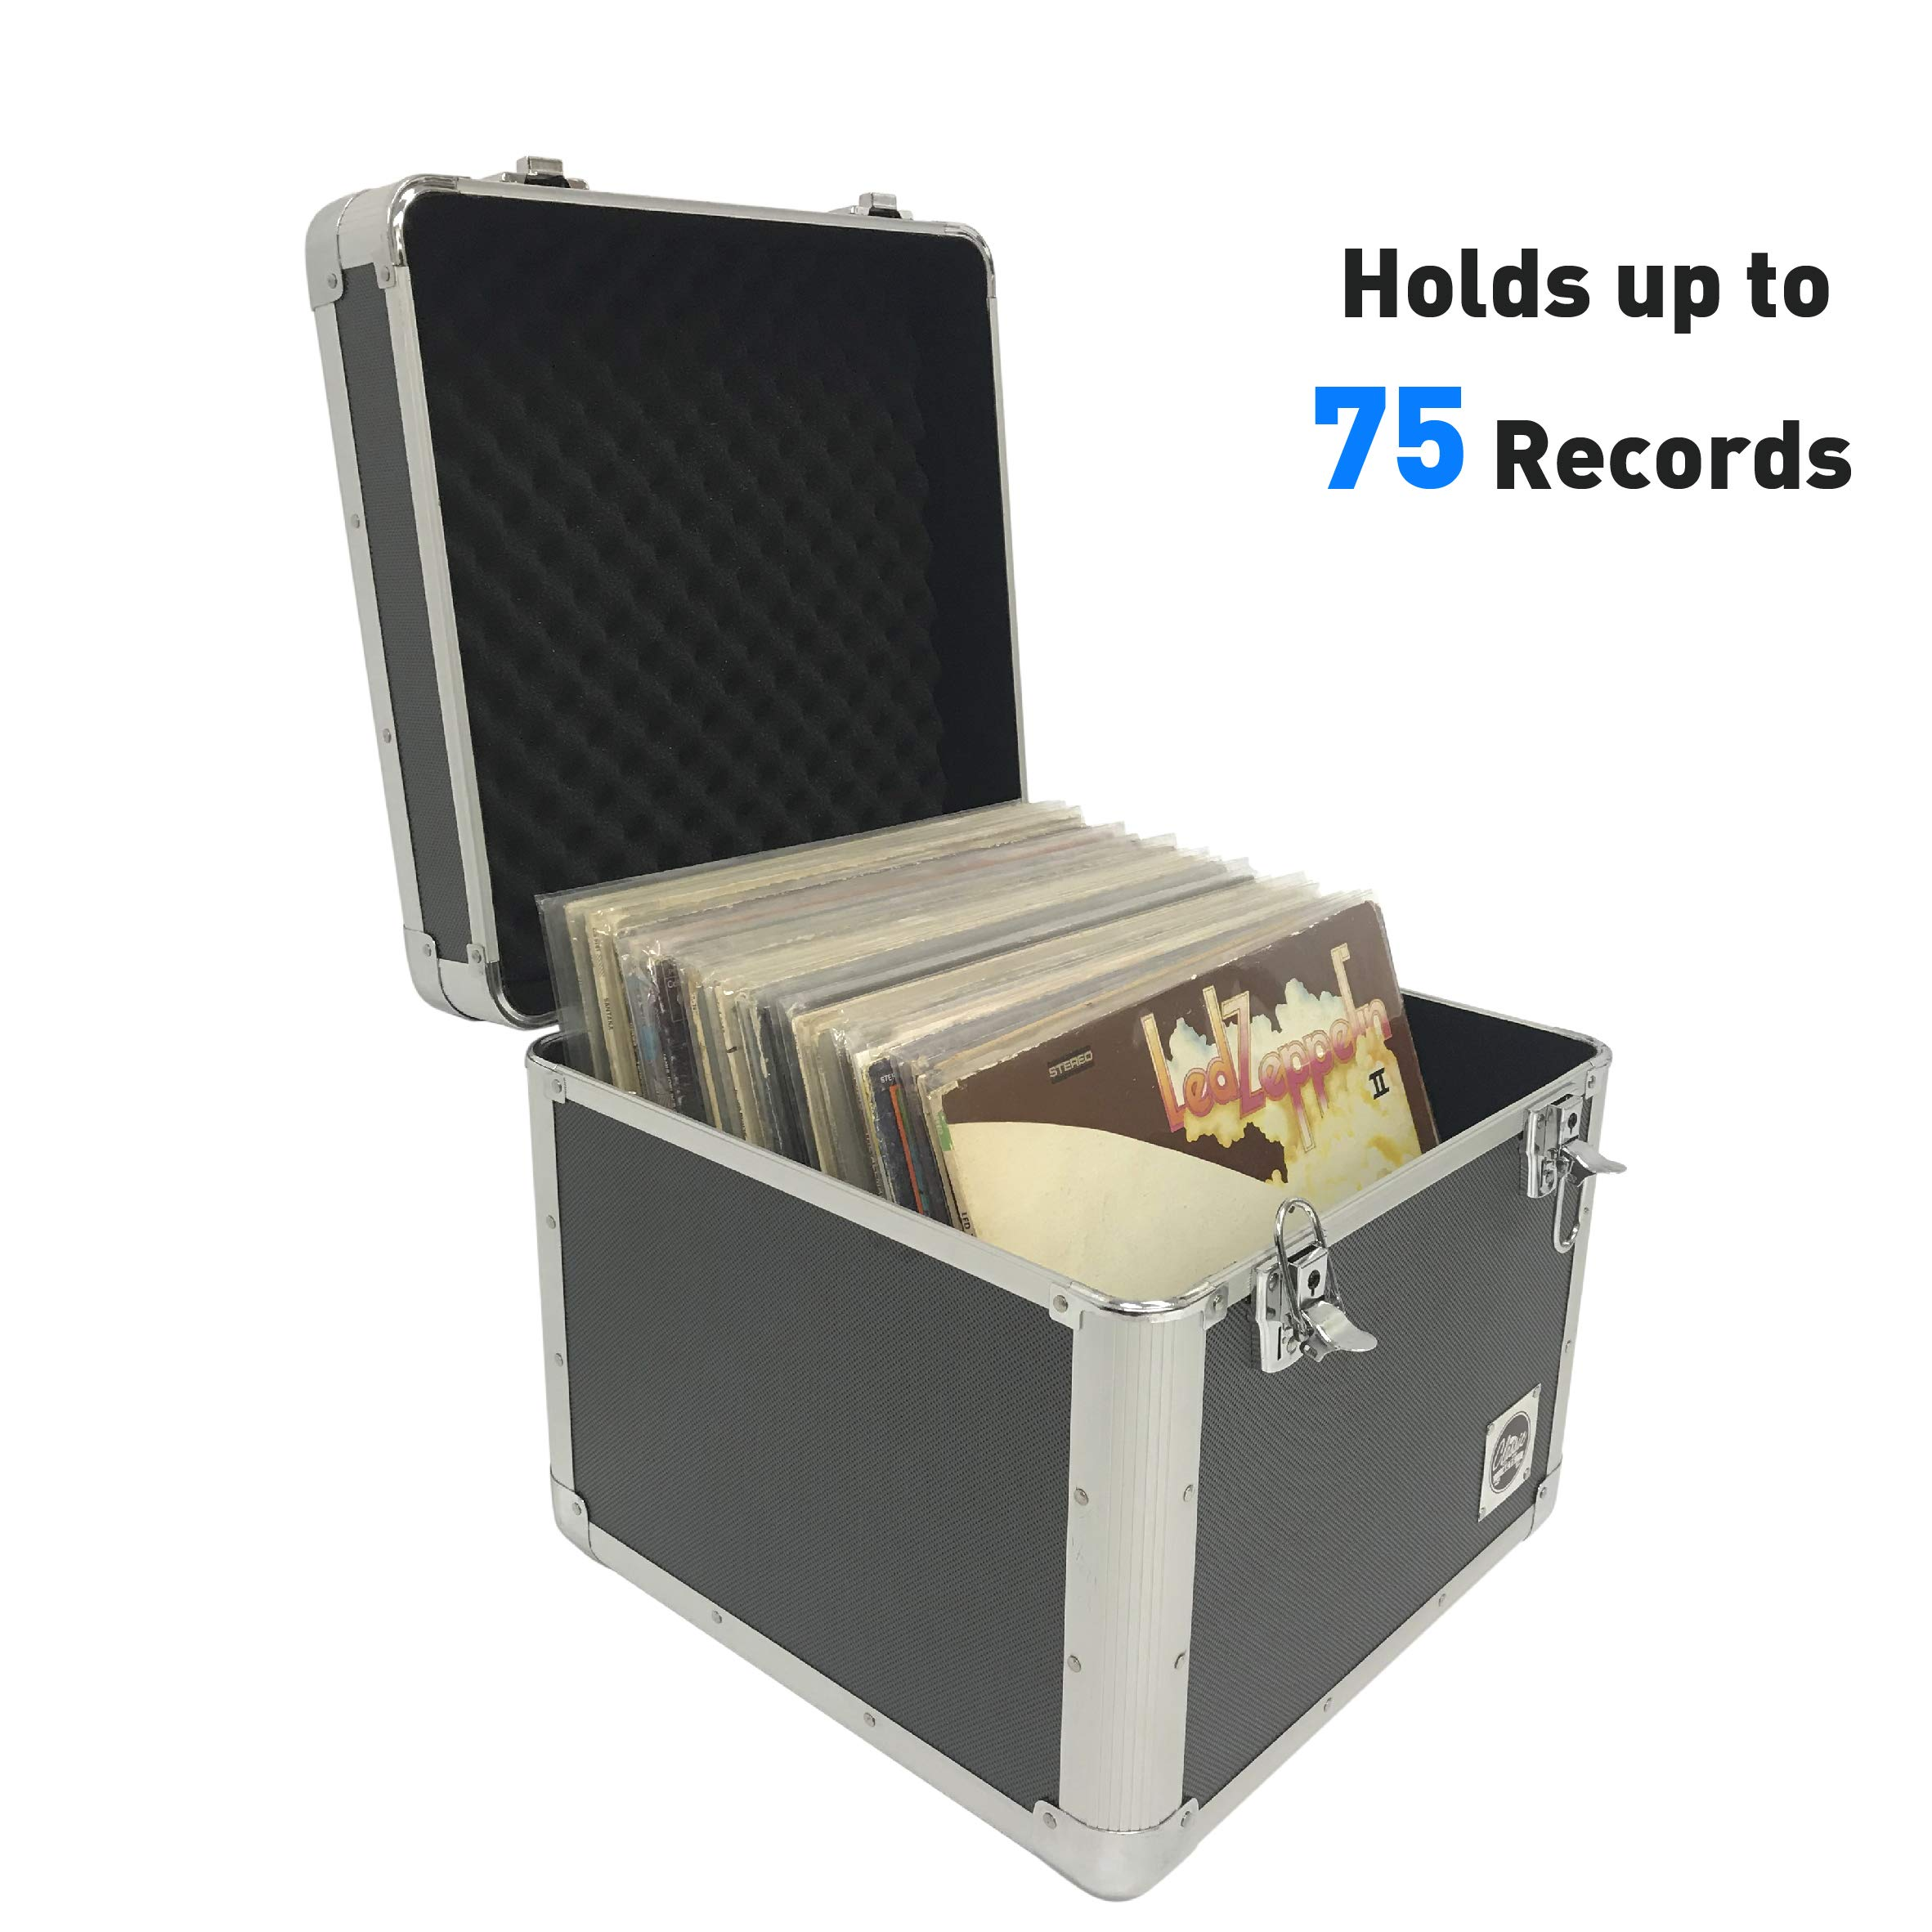 Classic Acts Vinyl Record Album Storage Case - Aluminum Lp Record Player Crates for Records (Holds 75 Records) by EasyGo Products